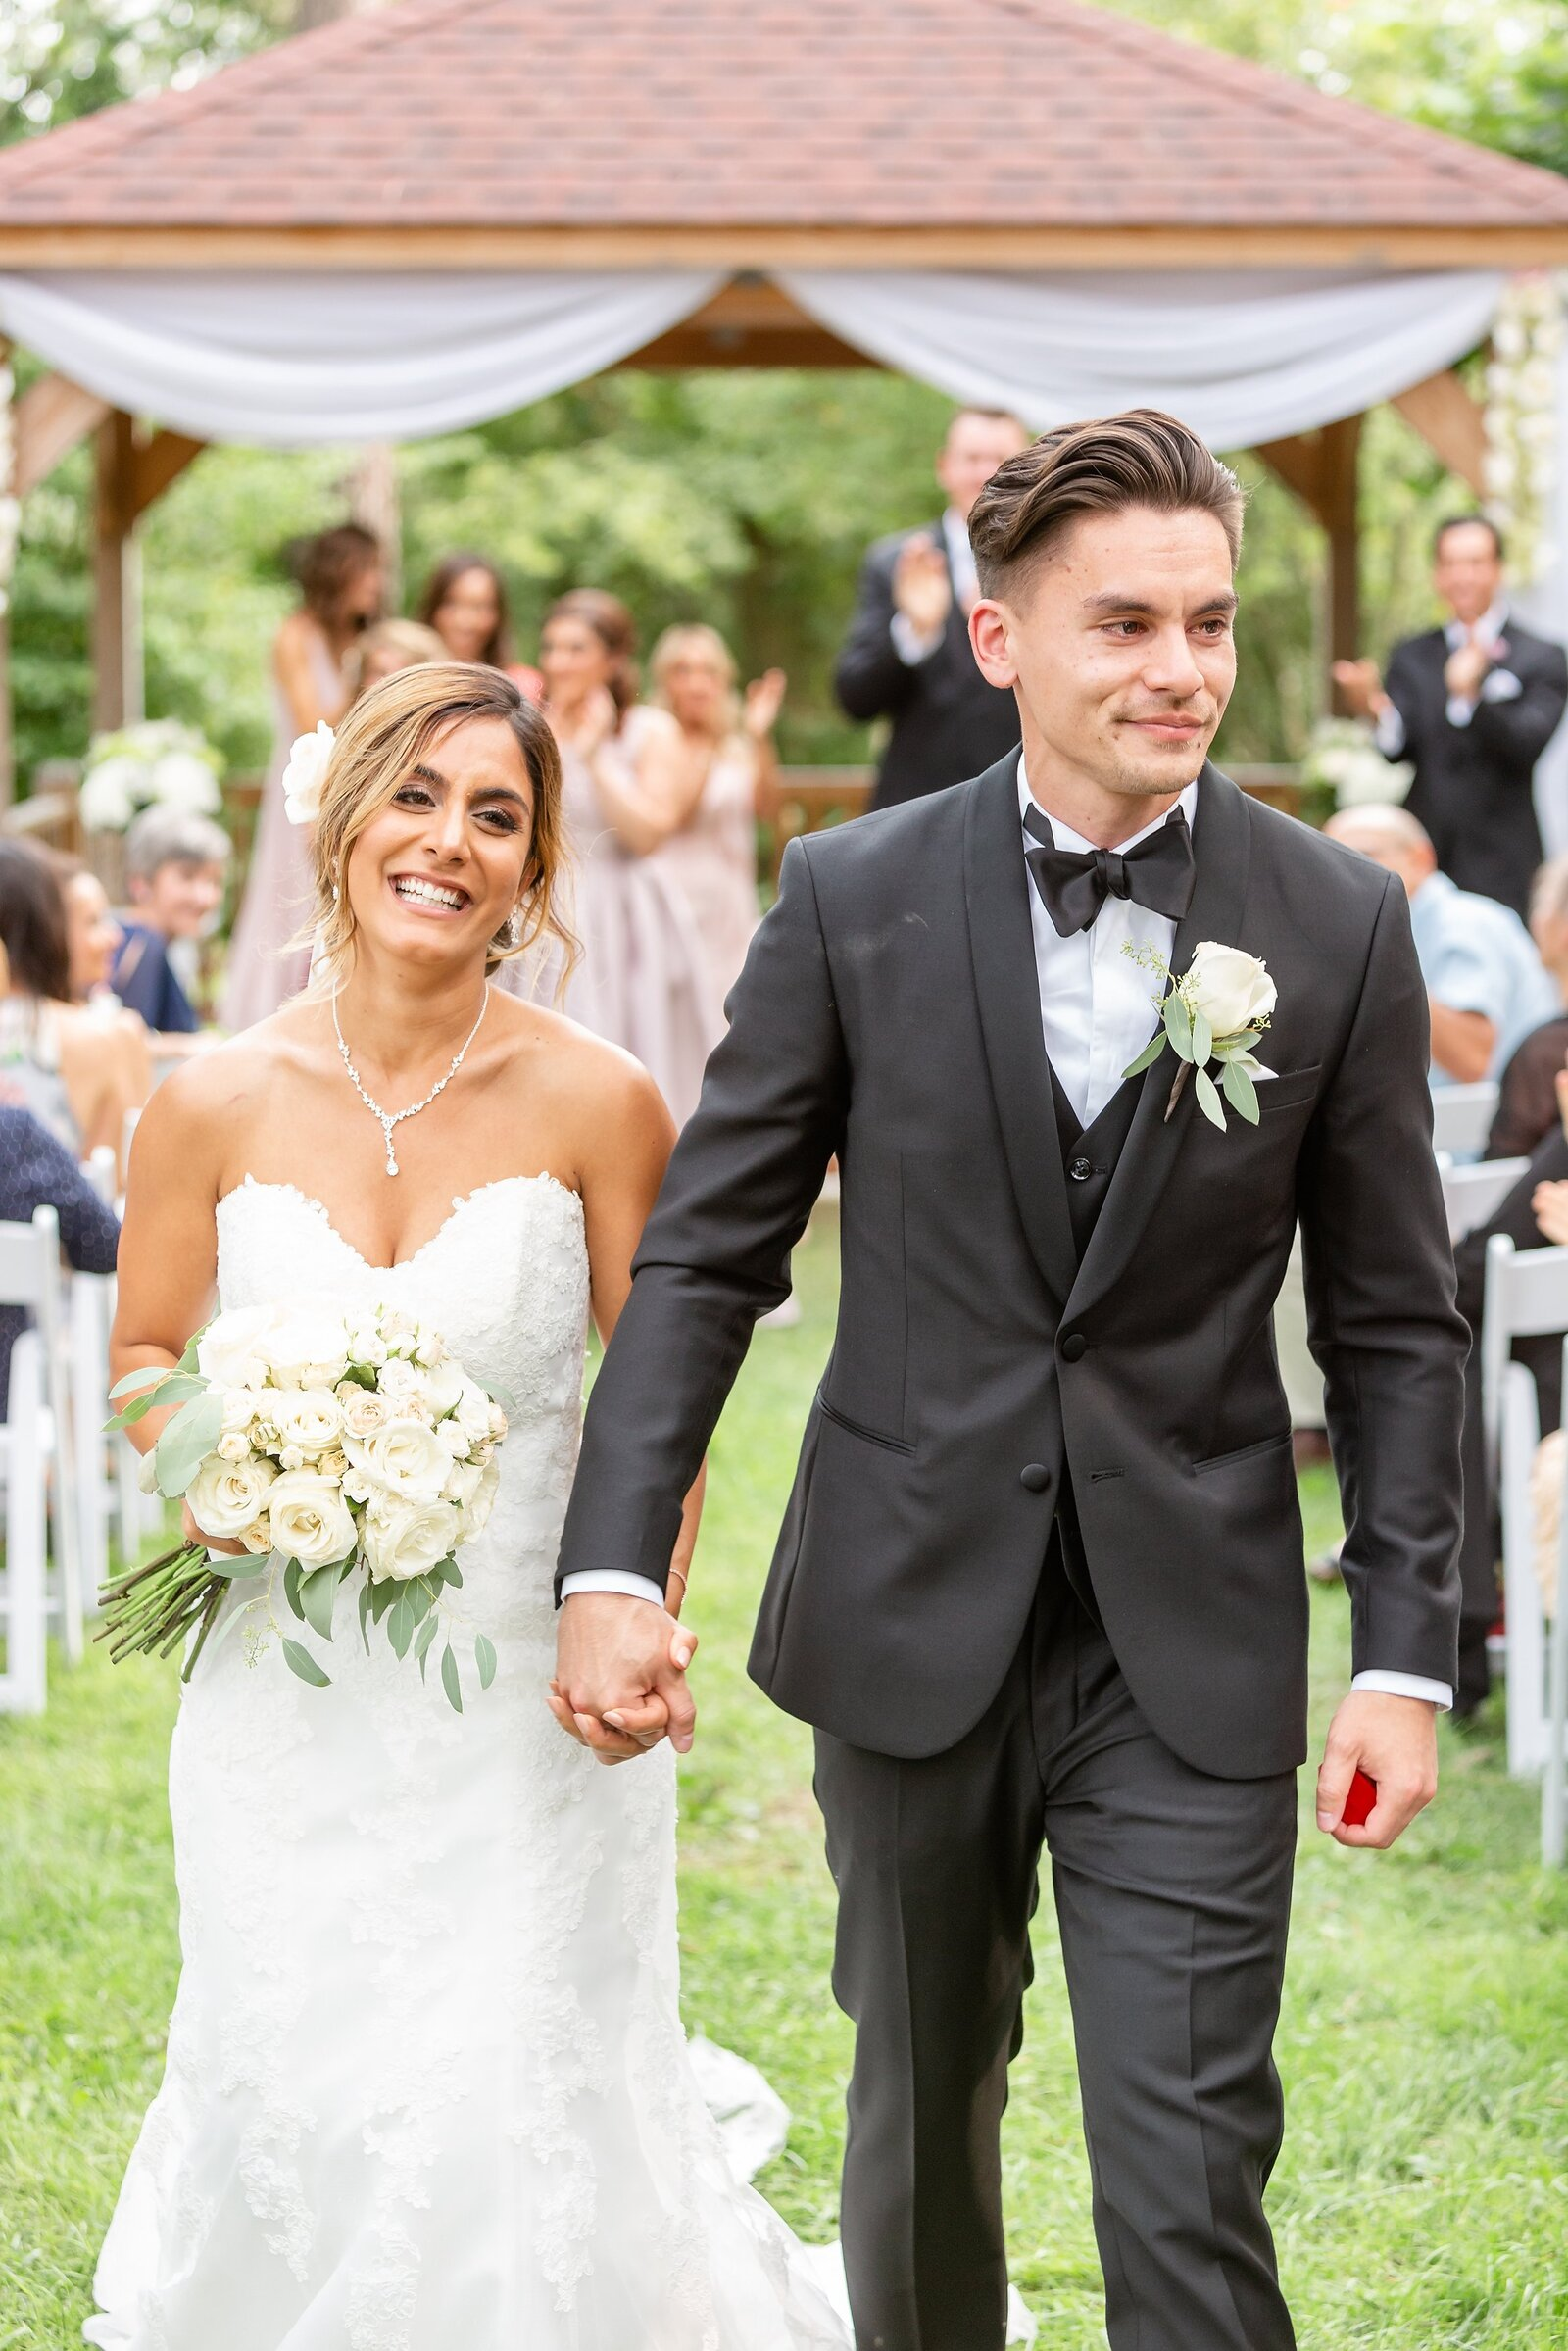 Bride-and-groom-walk-down-the-aisle-as-husband-and-wife-after-their-wedding-ceremony-at-Elsie-Perrin-Williams-Estate